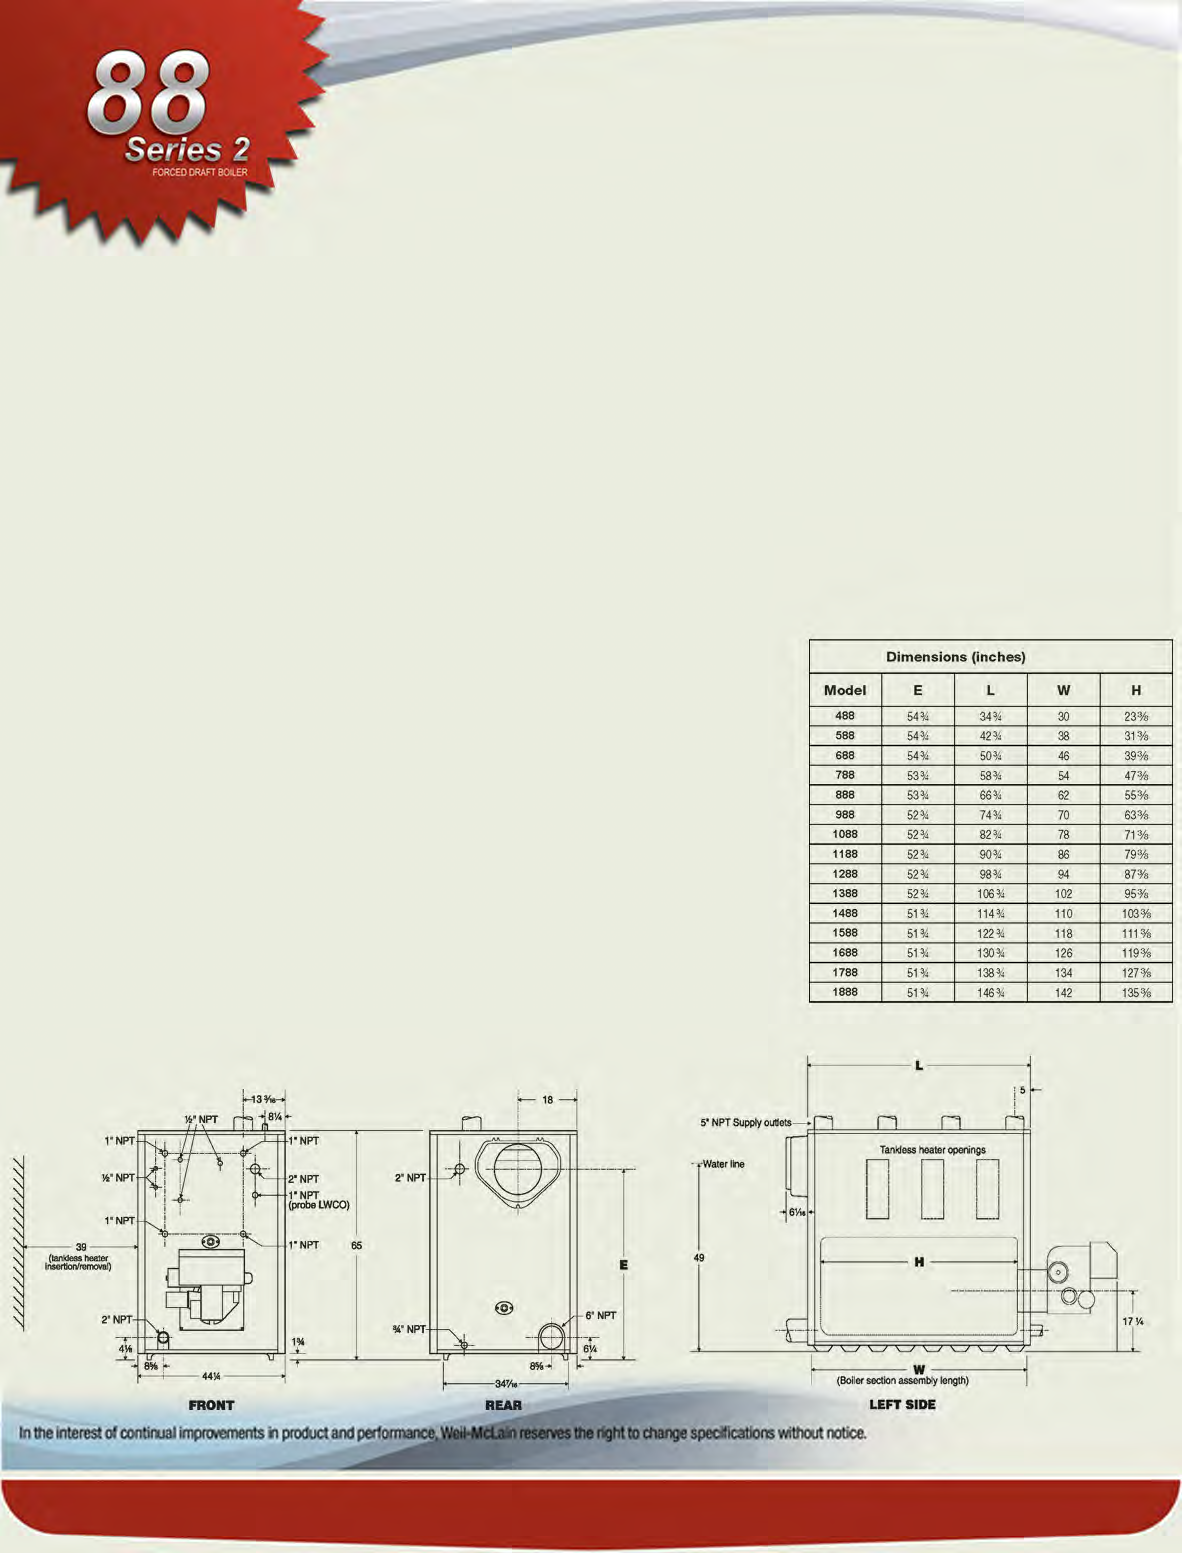 Weil Mclain Price Page Index Pdf Boiler Schematic Diagram Optional Equipment On All Burners Decsription Lights Non Alarm Function 7 1280 Oil